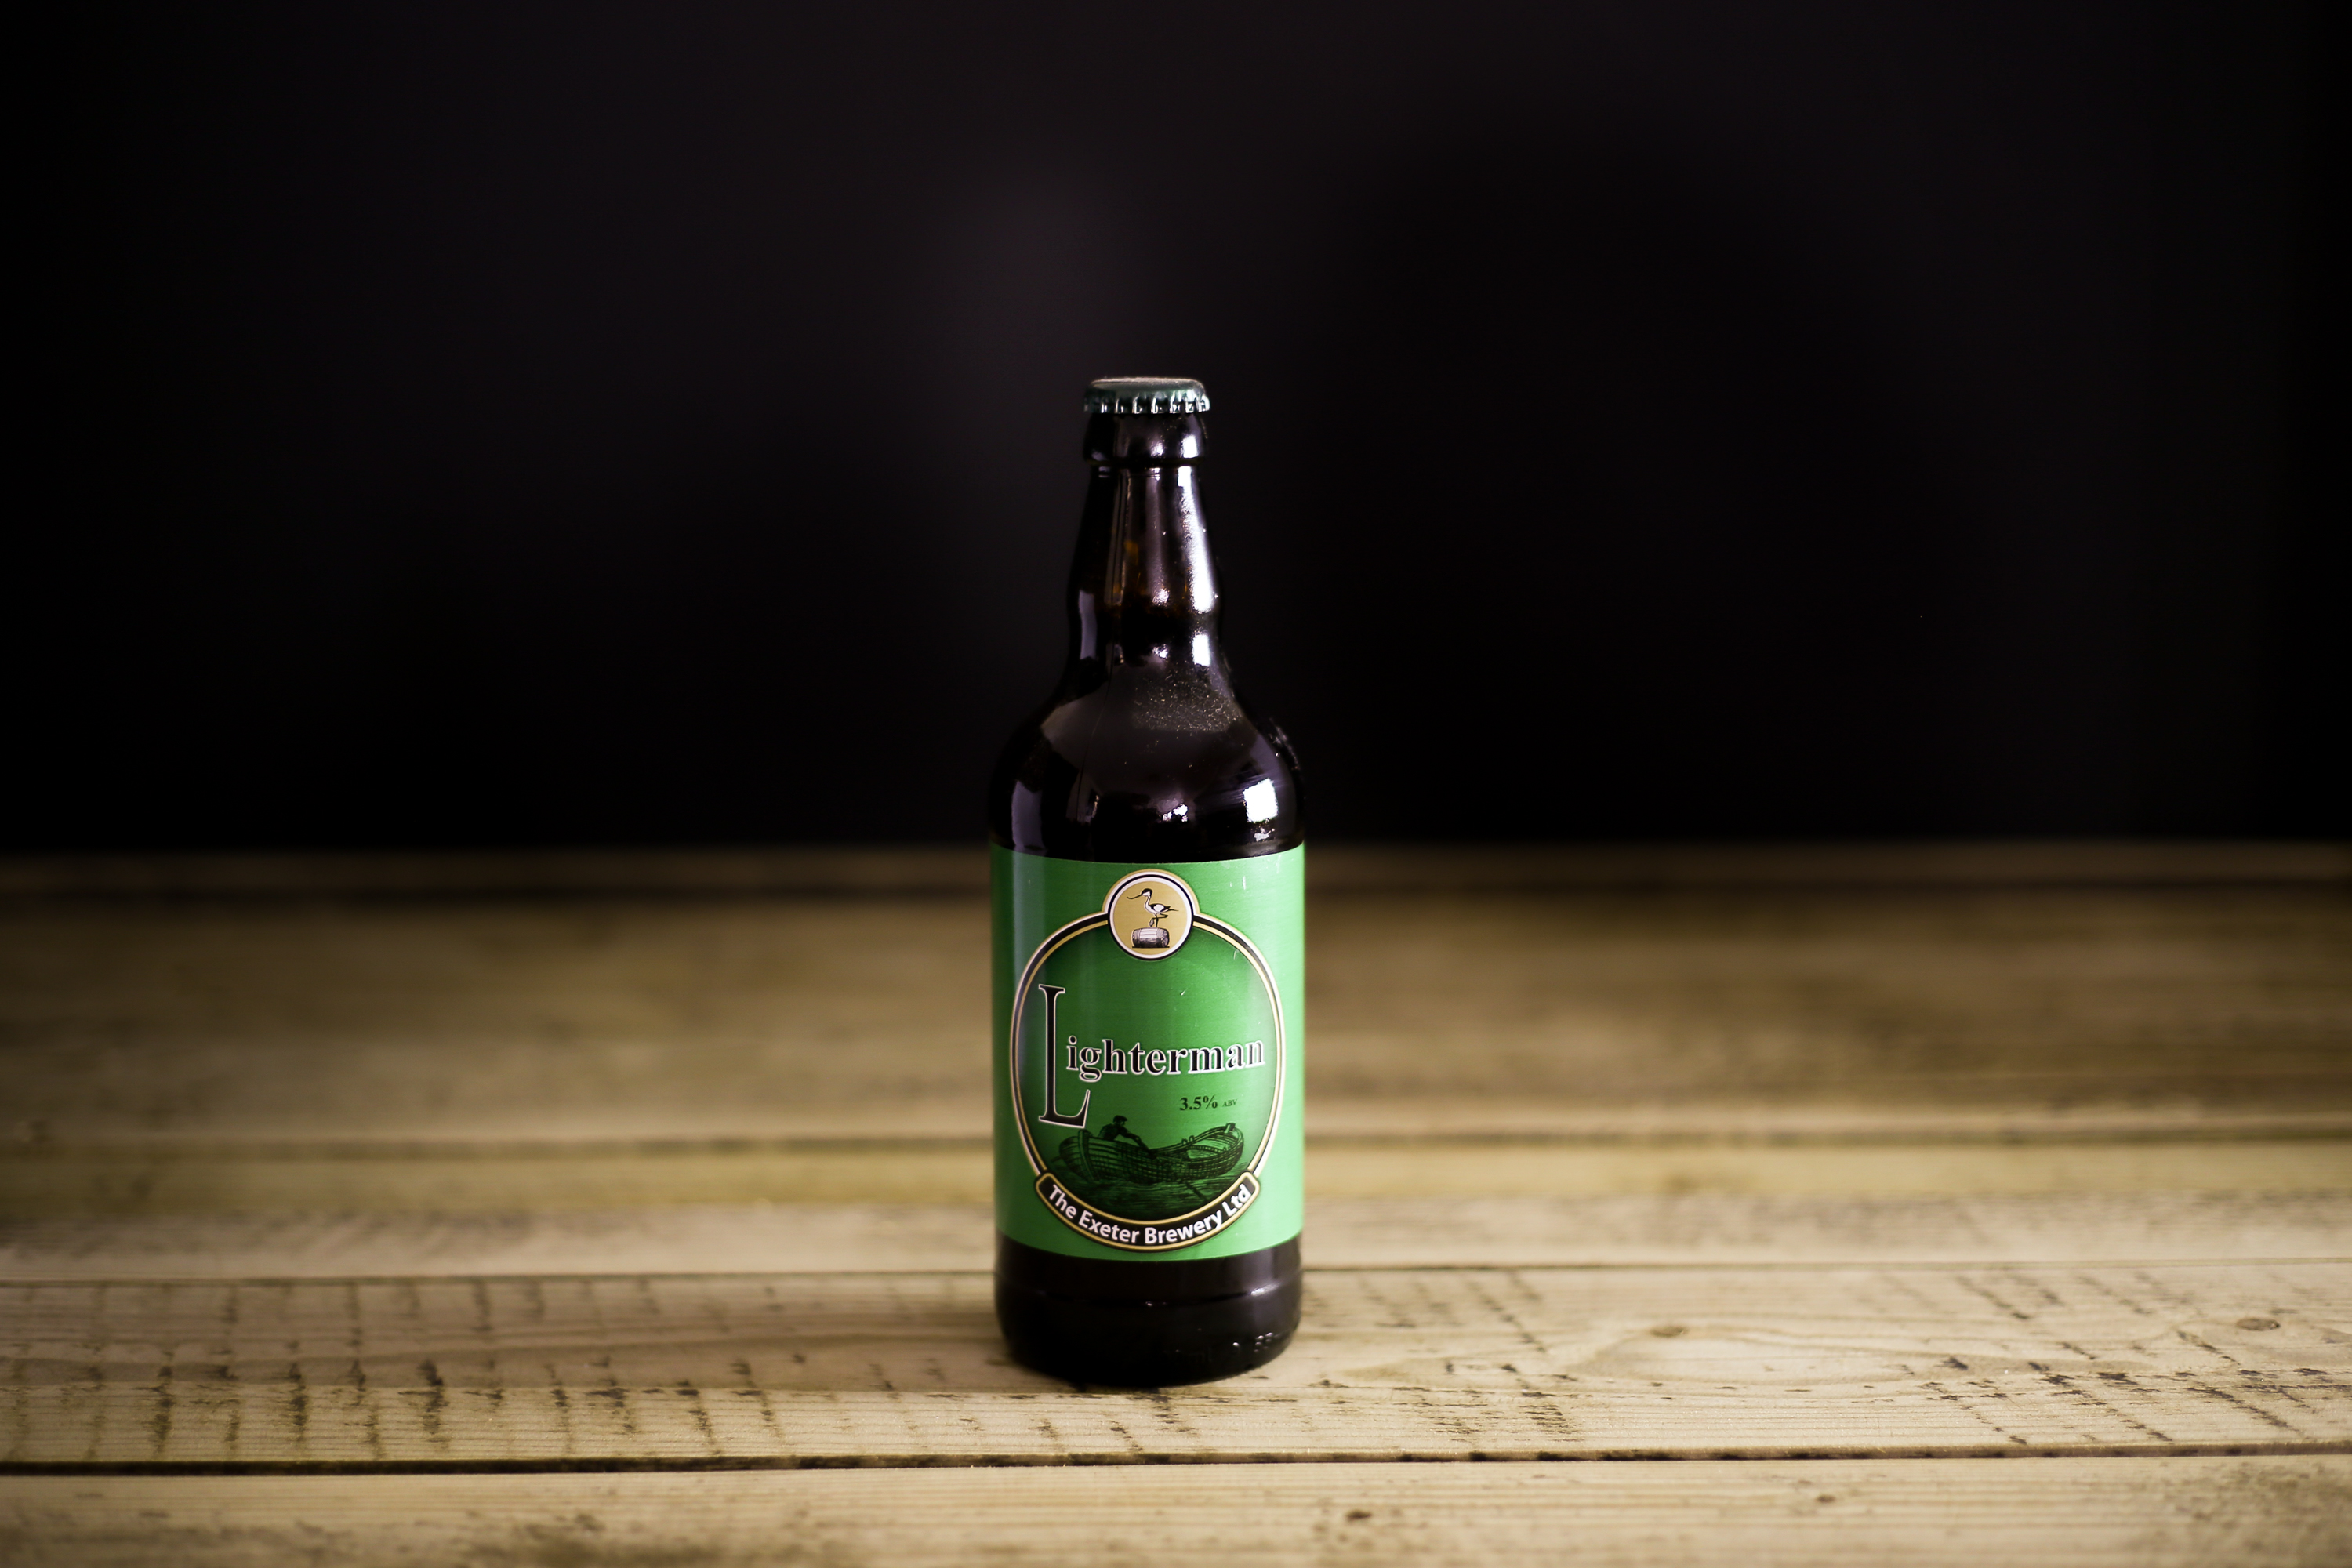 The Exeter Brewery Lighterman Ale